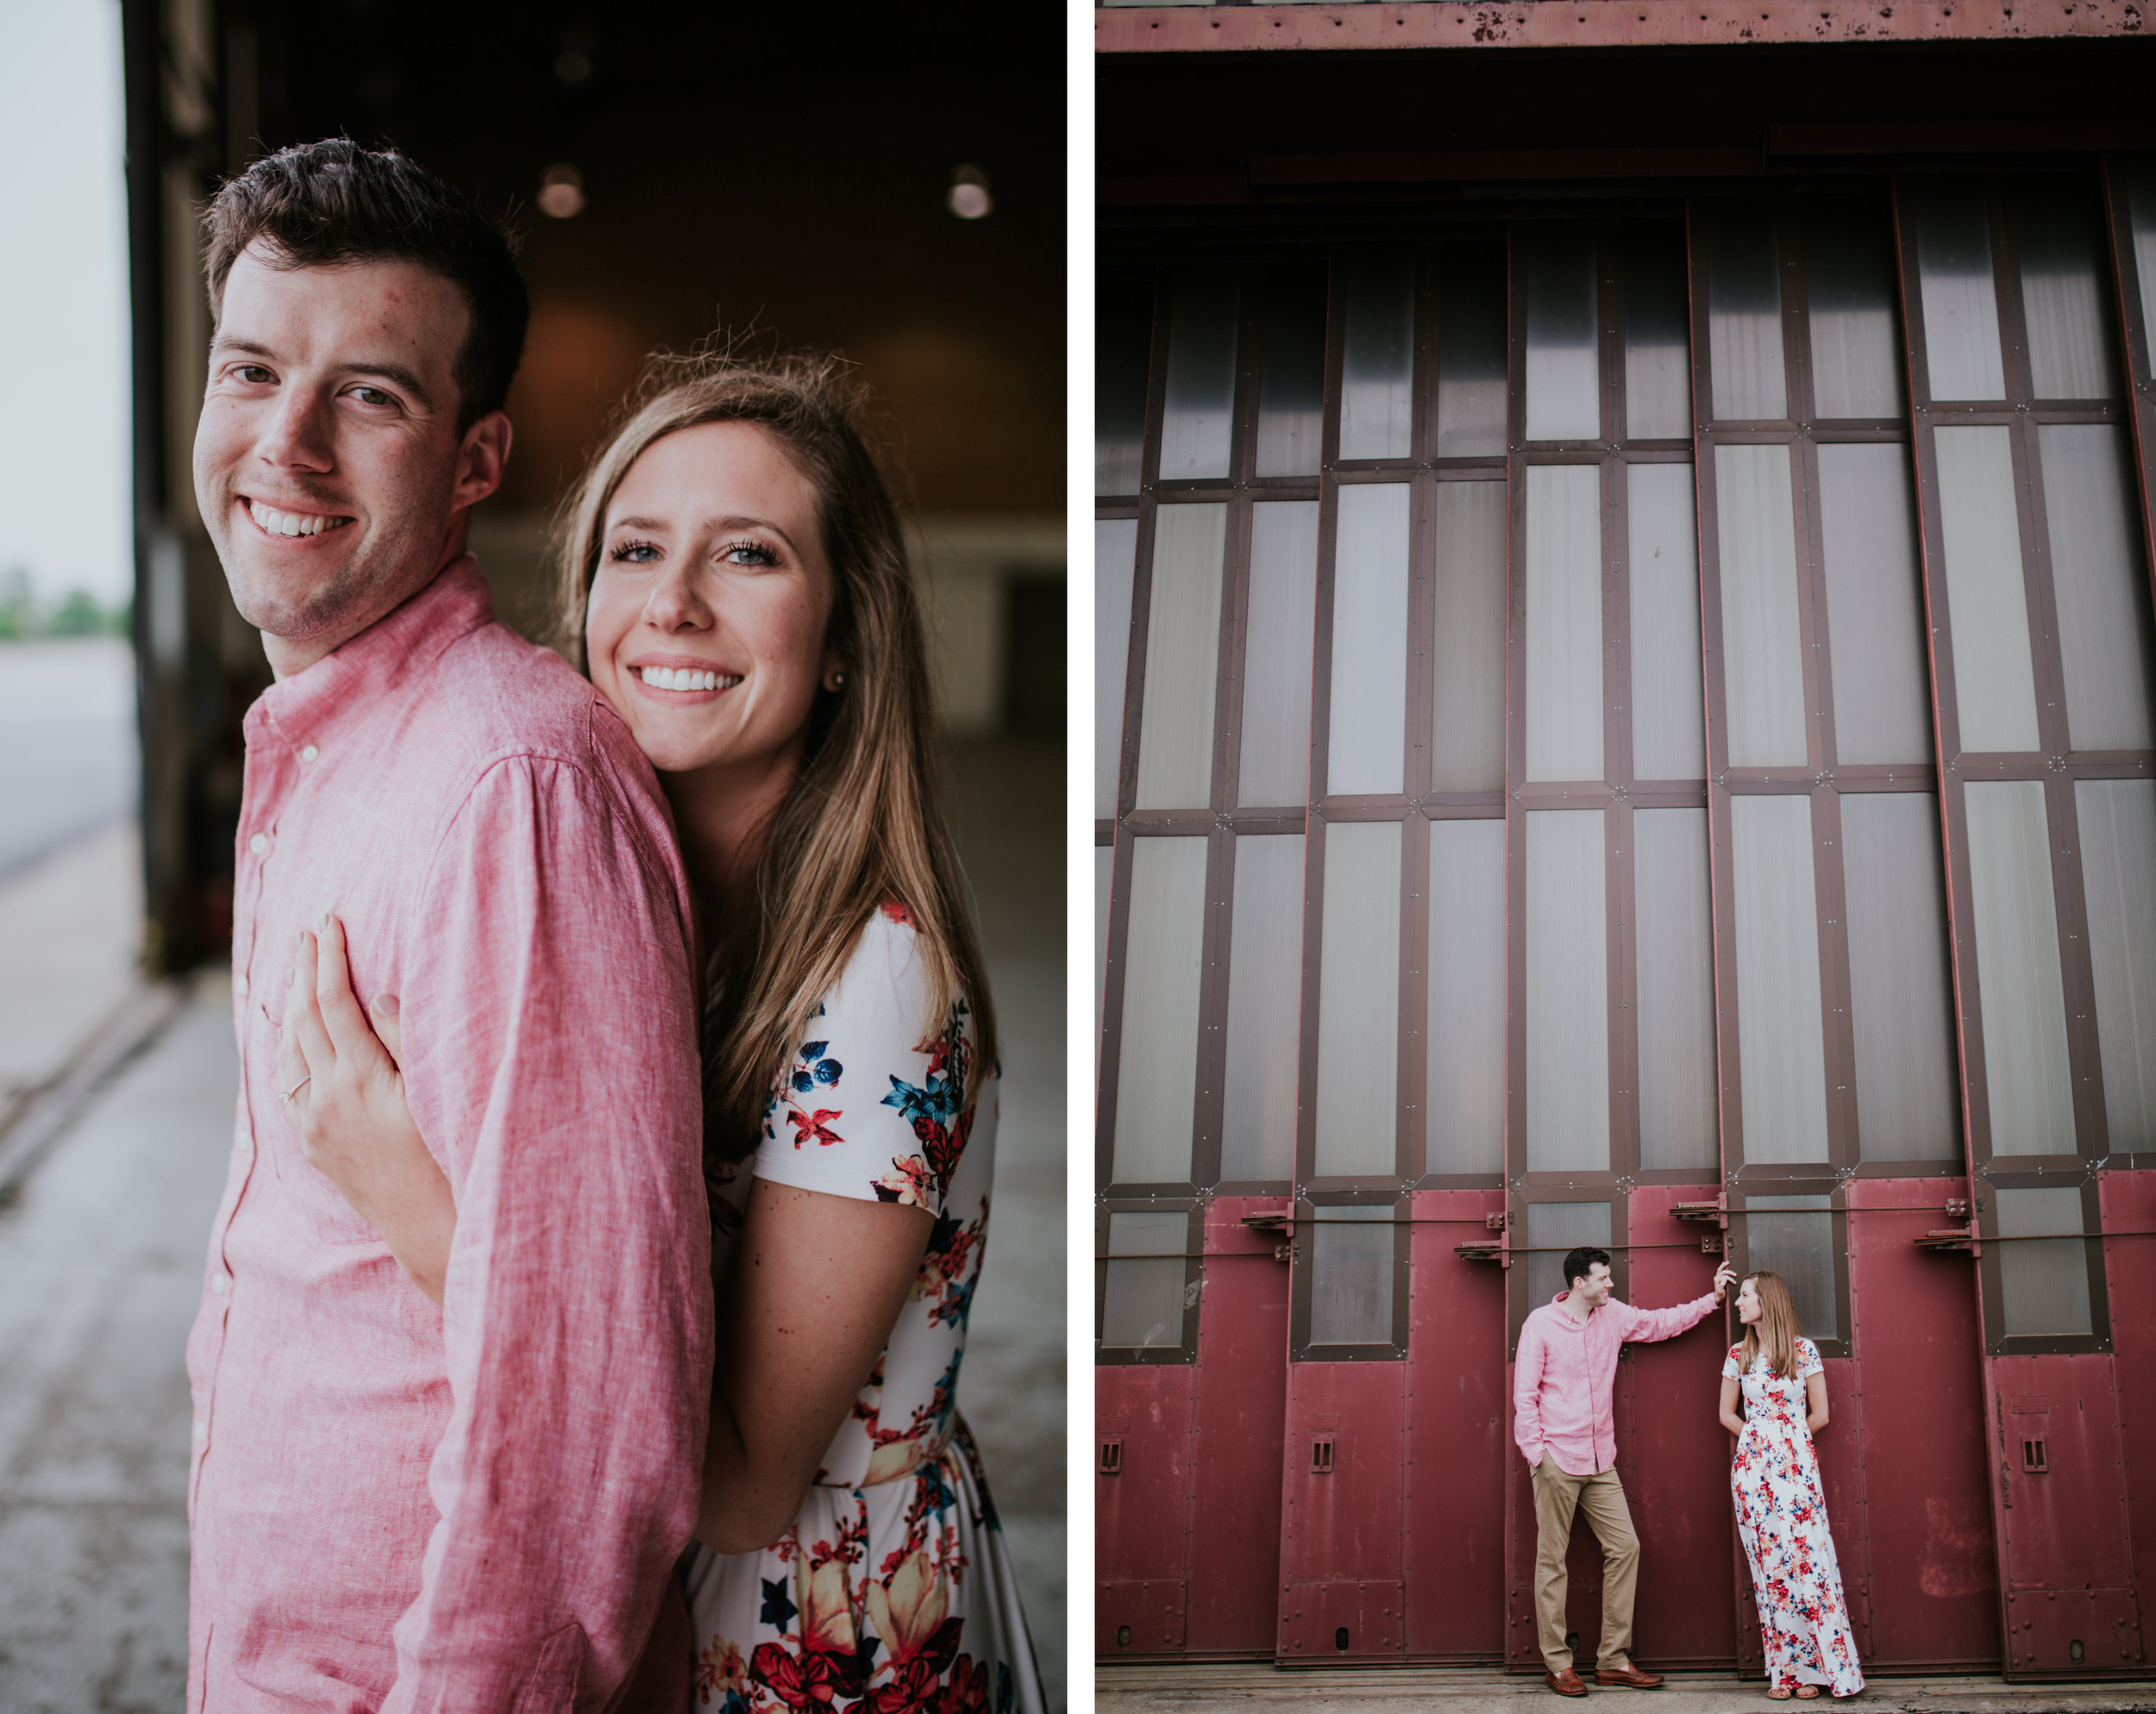 LGP-Detroit-Airport-Hanger-Engagement-Session-7.jpg